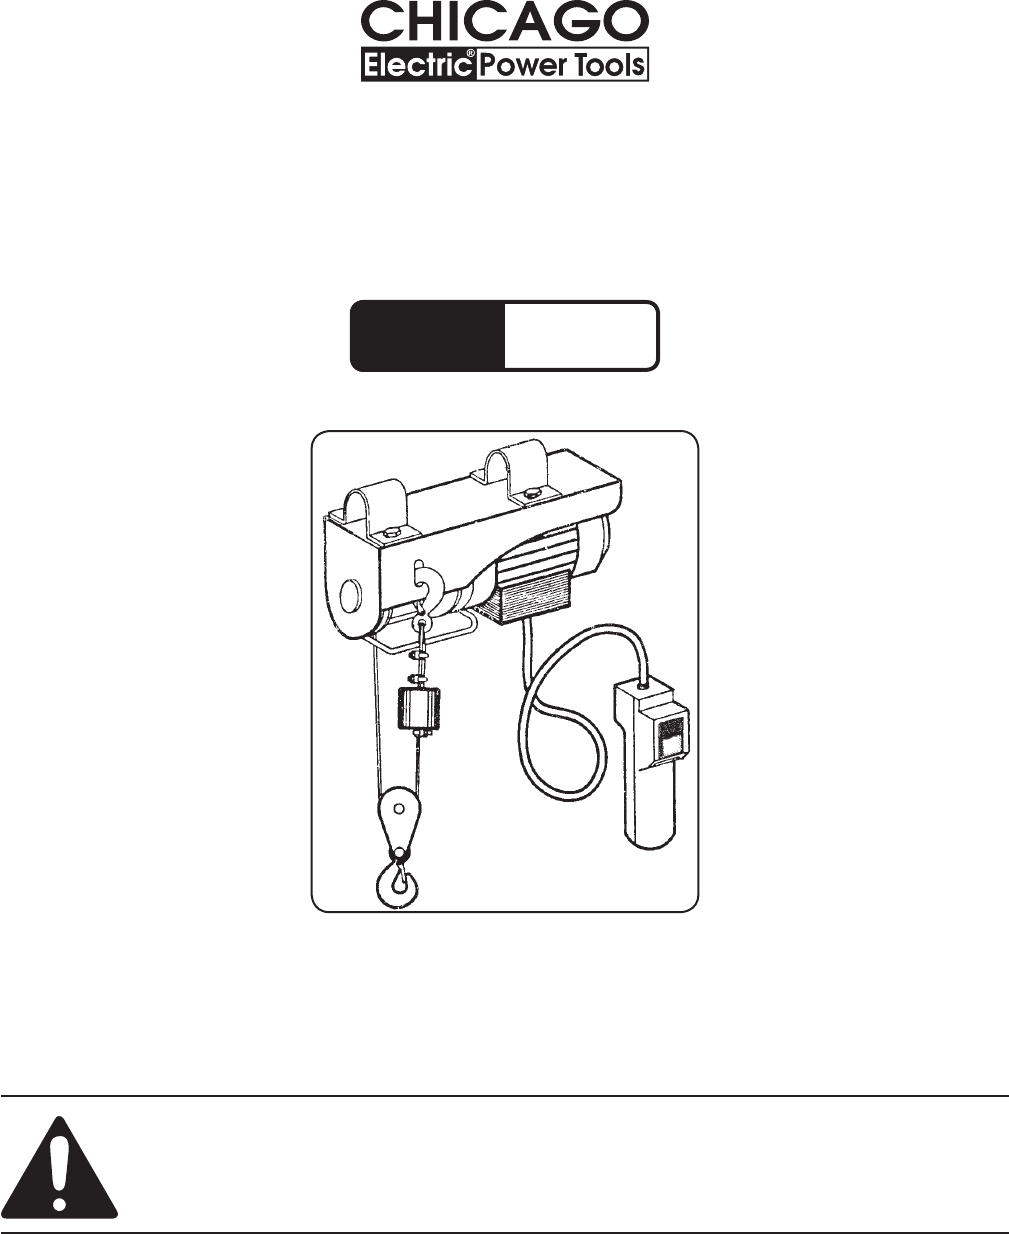 chicago electric hoist wiring diagram chicago chicago electric personal lift 40765 user guide manualsonline com on chicago electric hoist wiring diagram